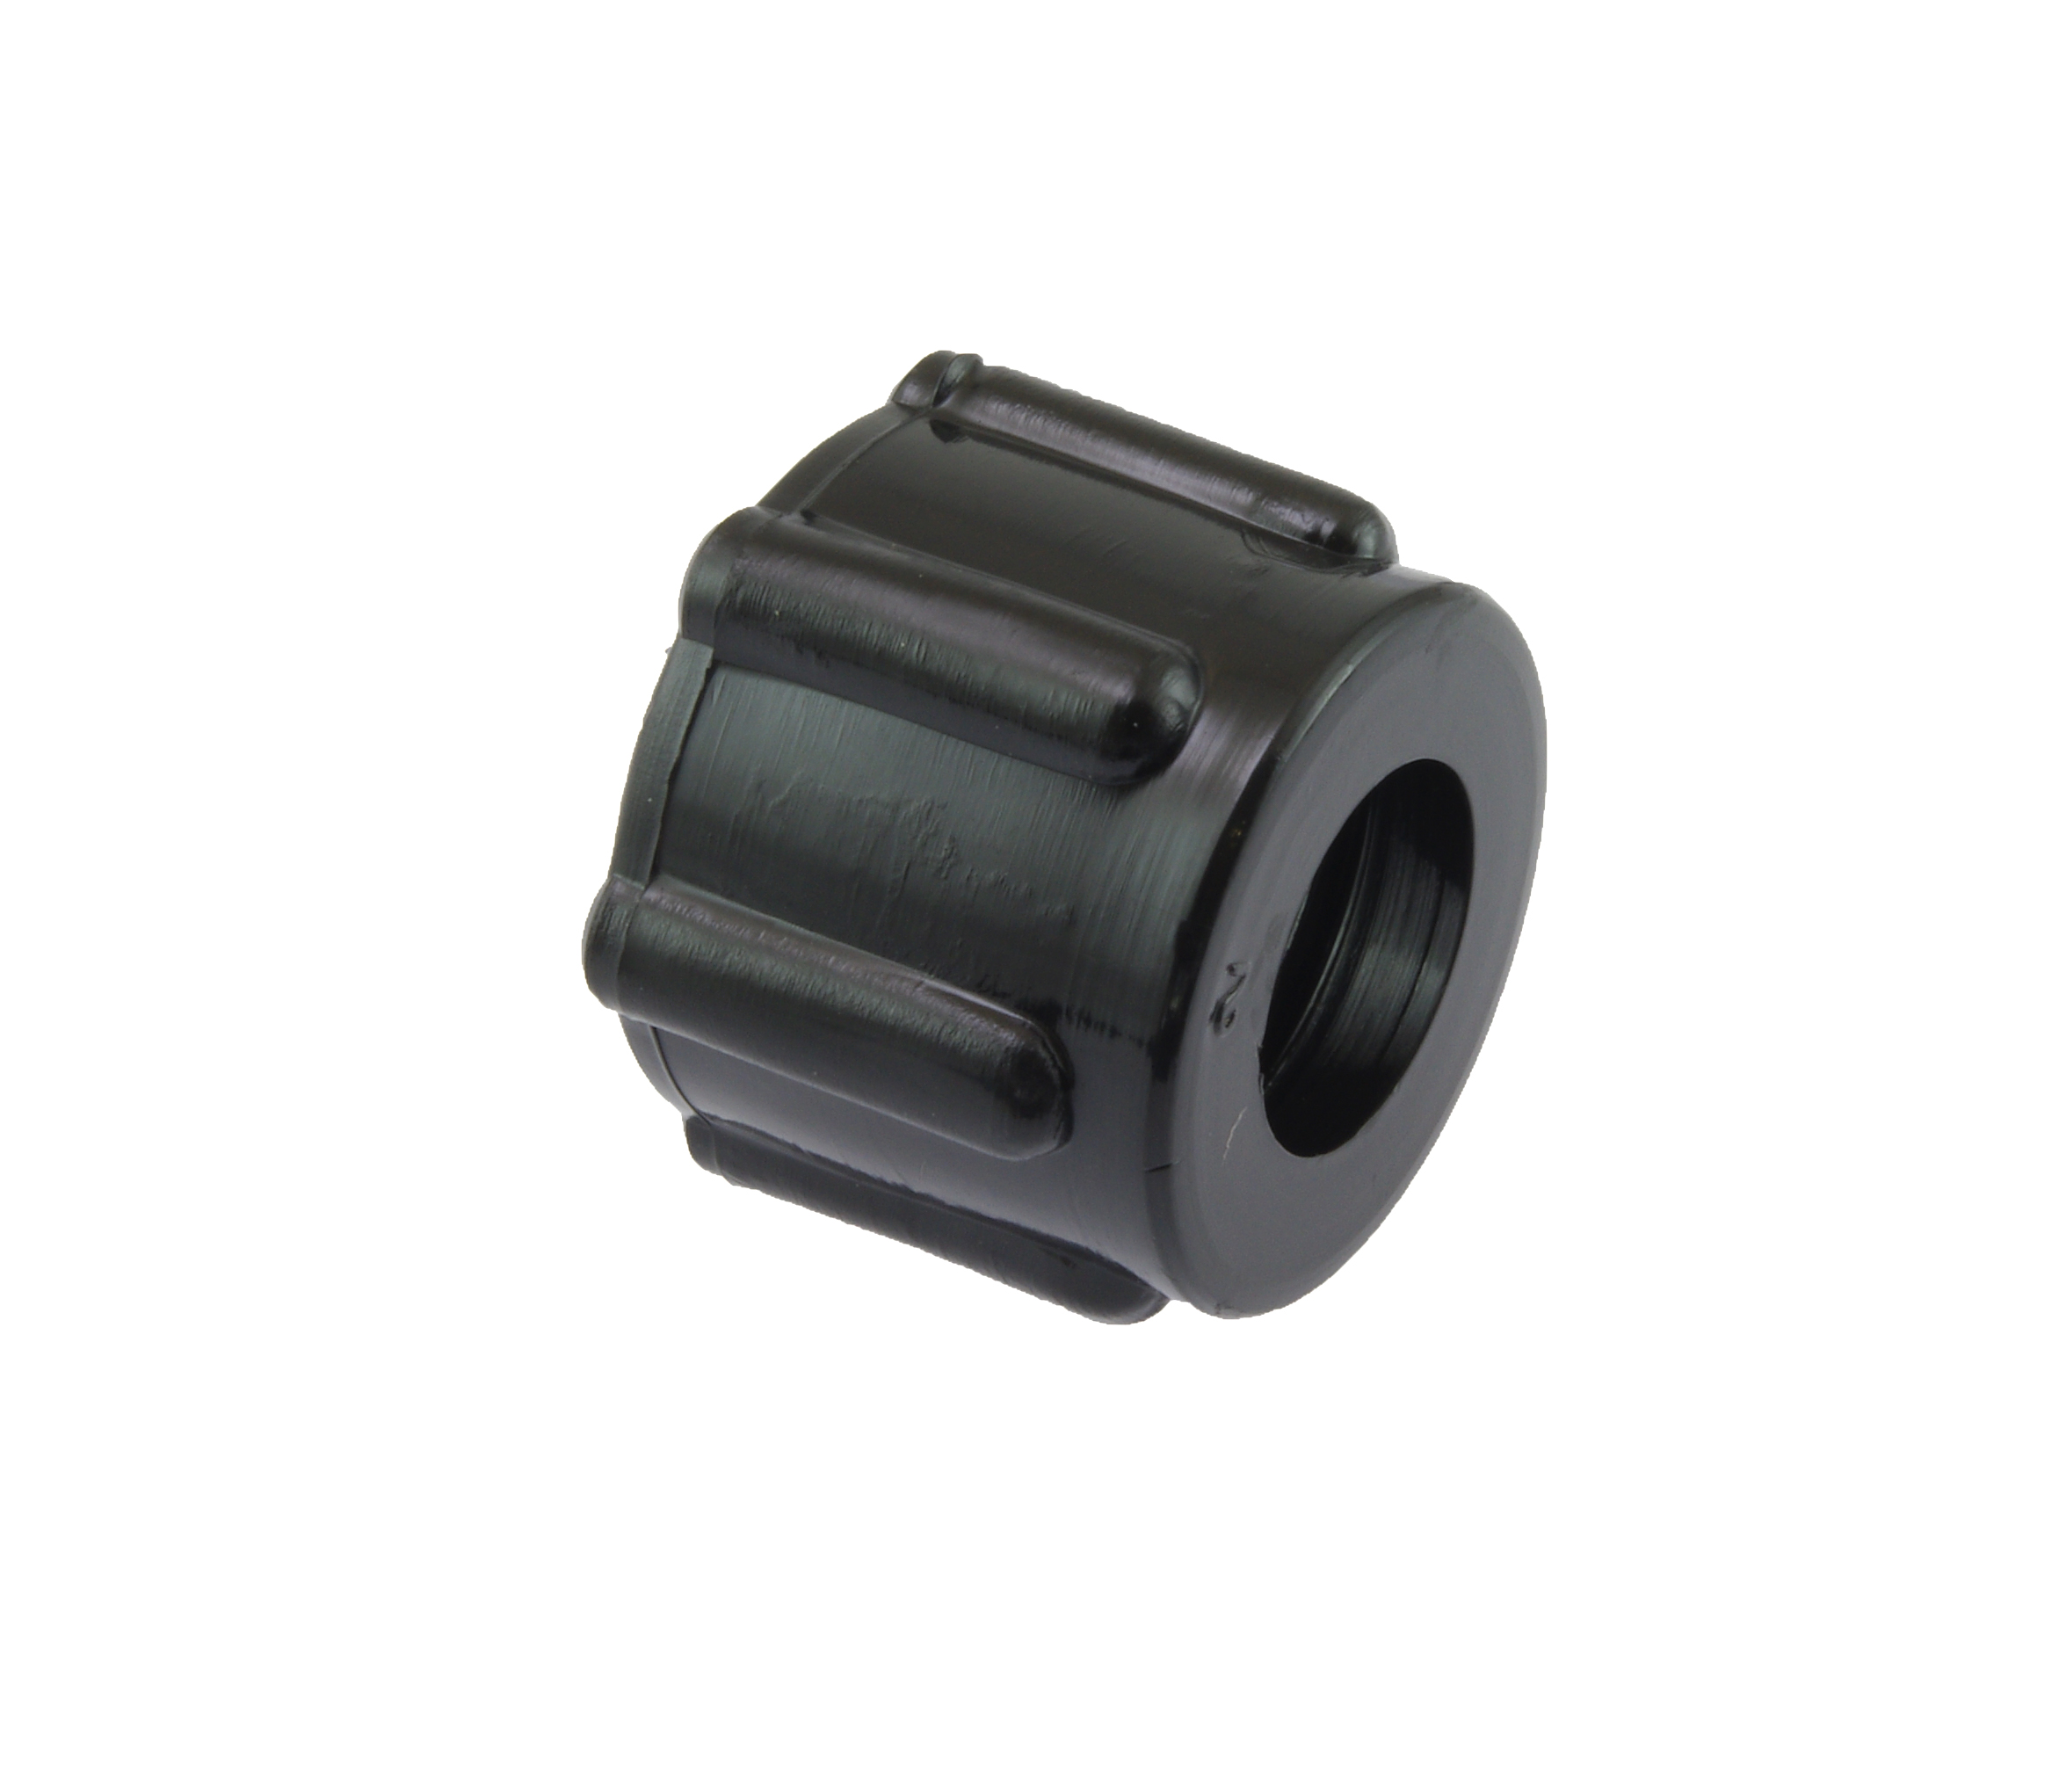 Cap screw nut G3/8